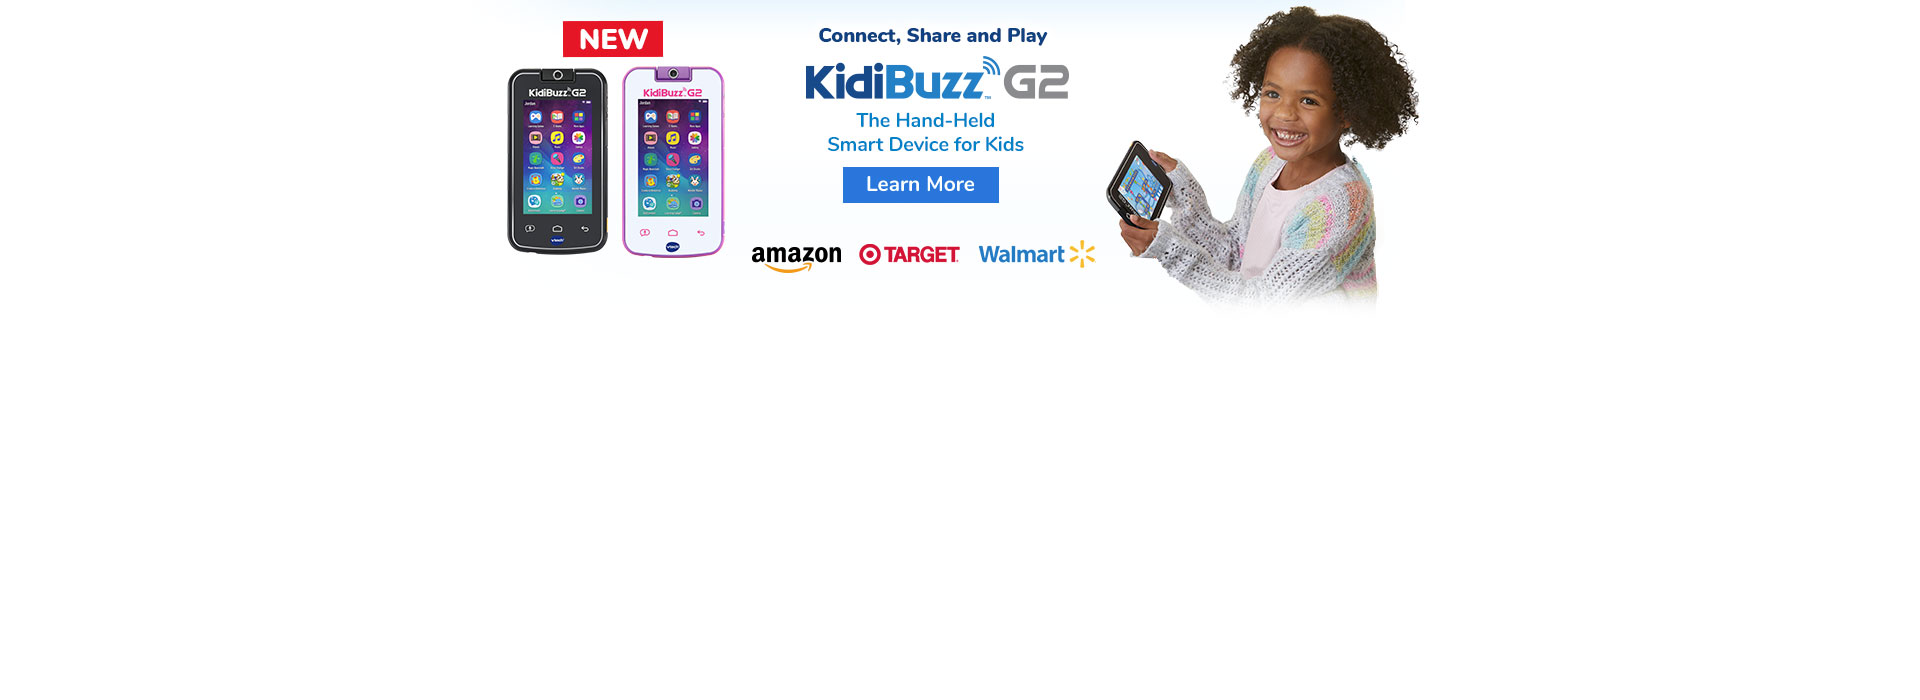 Check out the new KidiBuzz G2